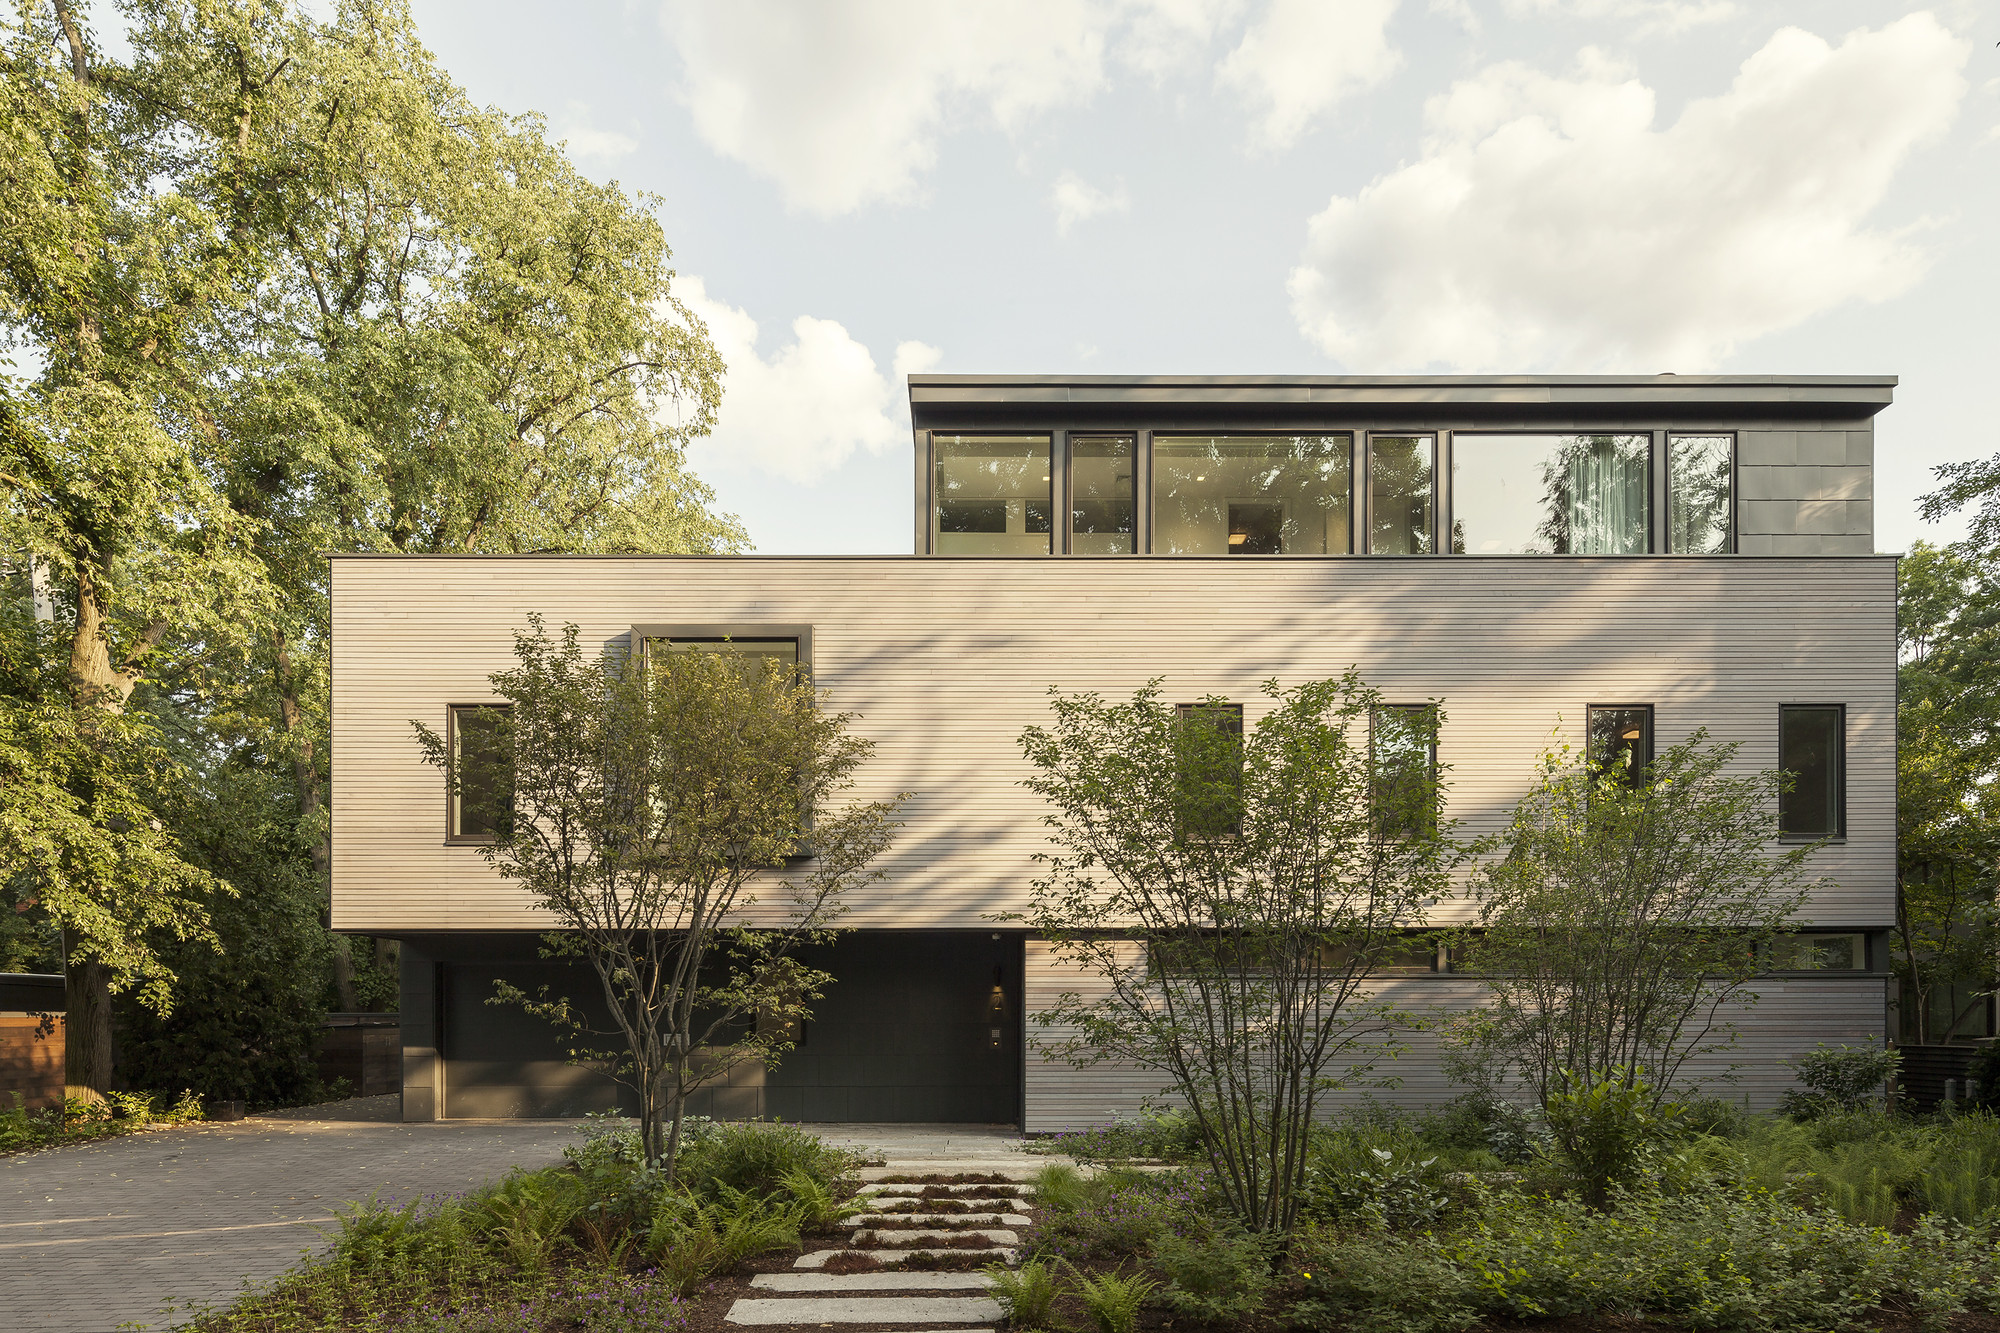 Casa en Cambridge / Anmahian Winton Architects, © Jane Messinger